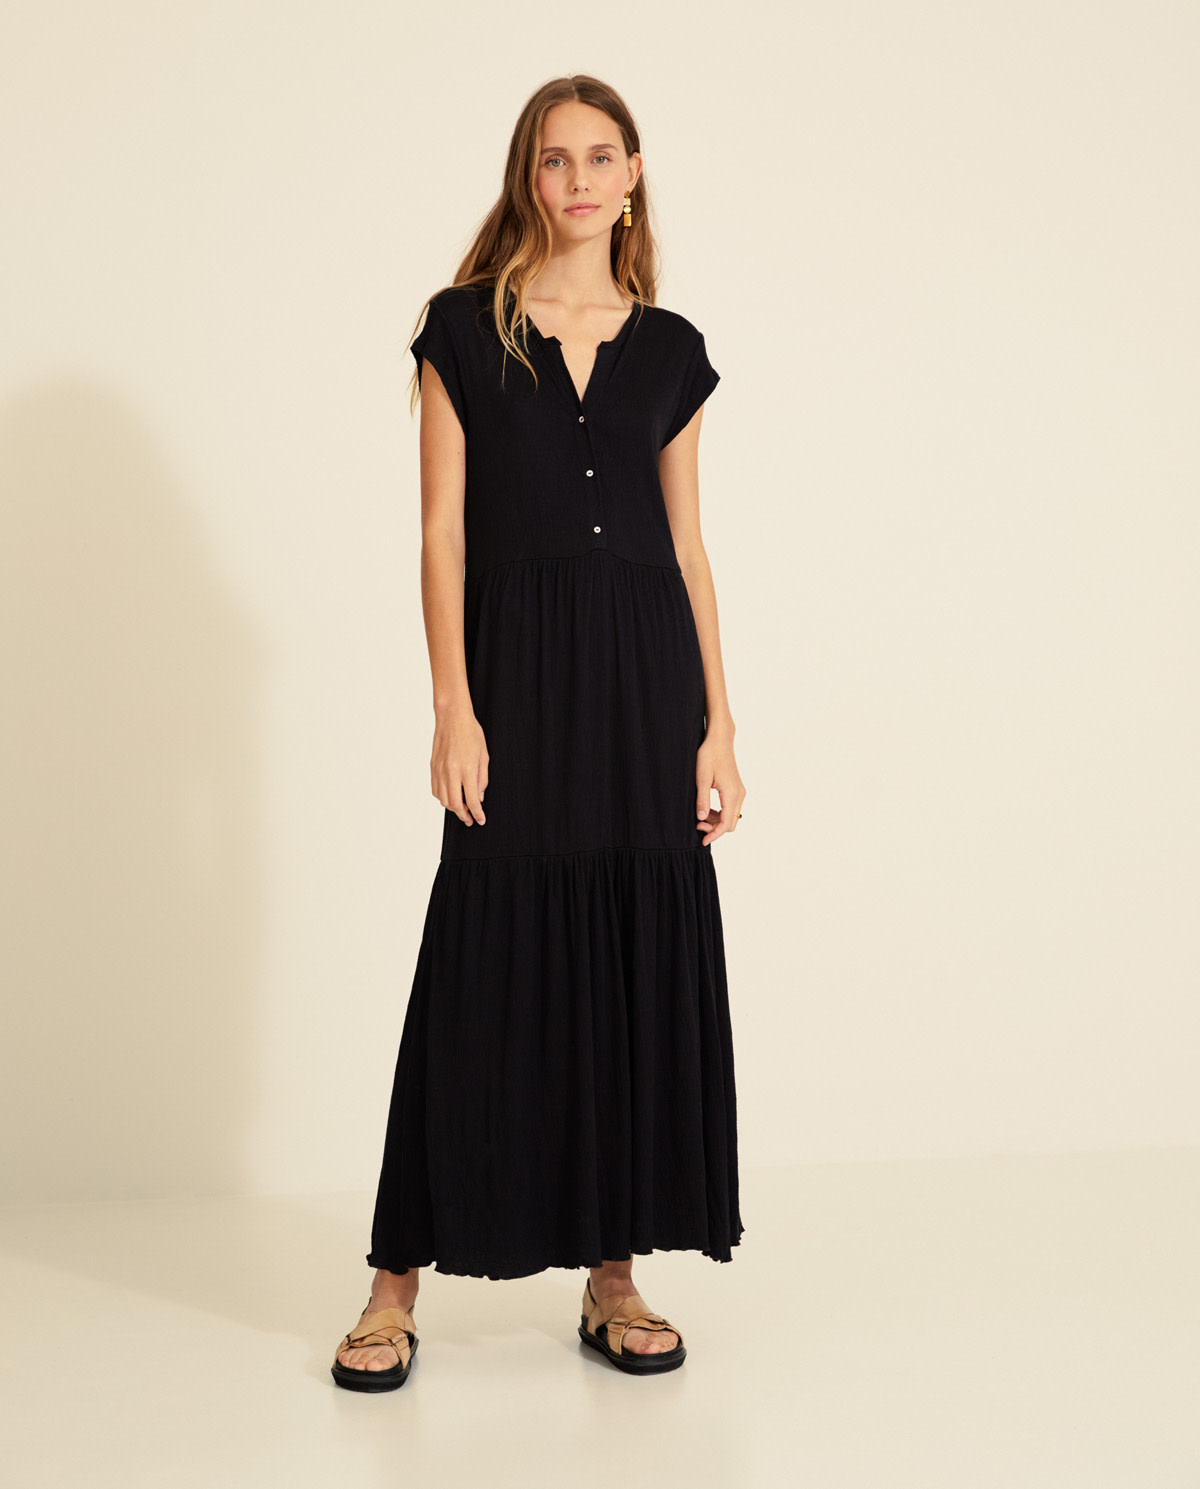 Yerse Marianne Dress